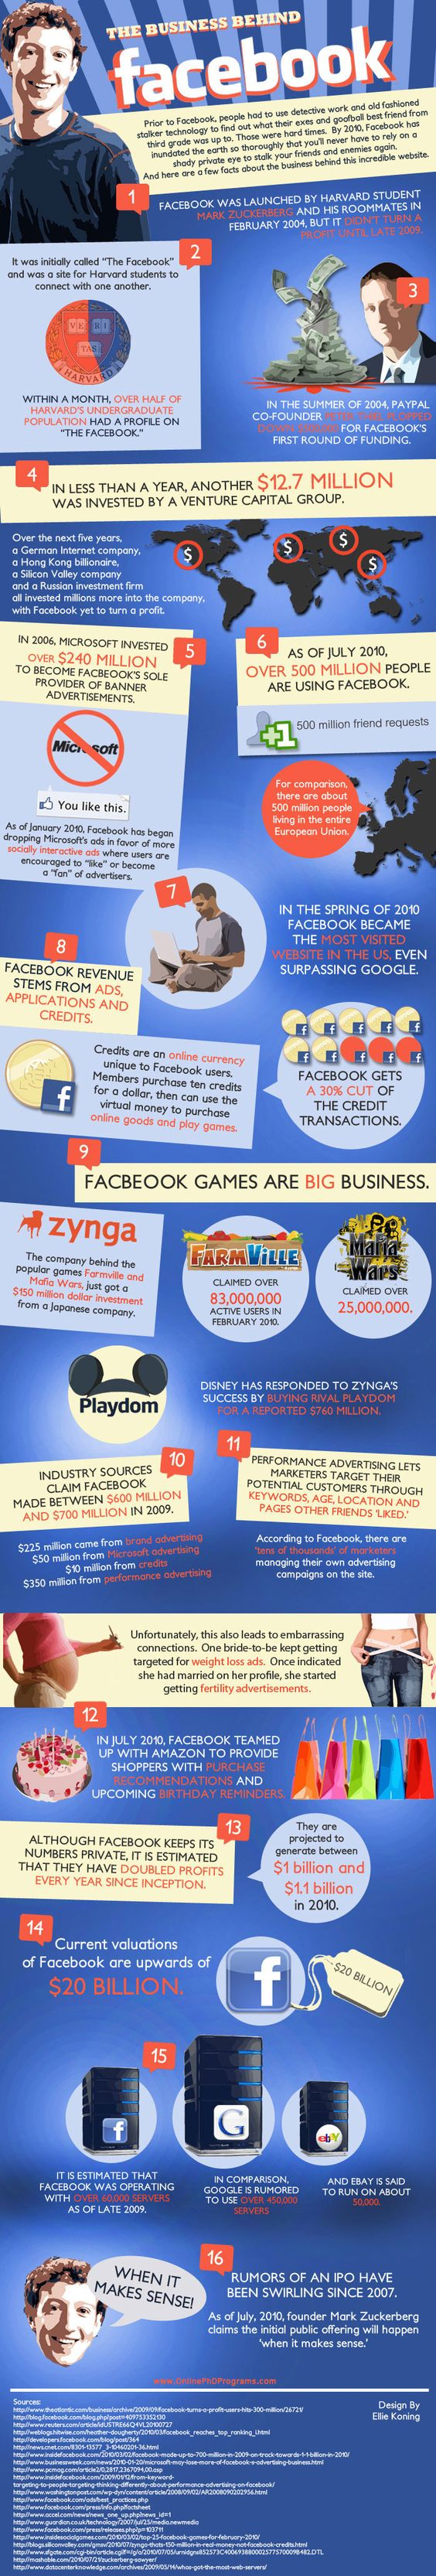 The History of Business Behind Facebook